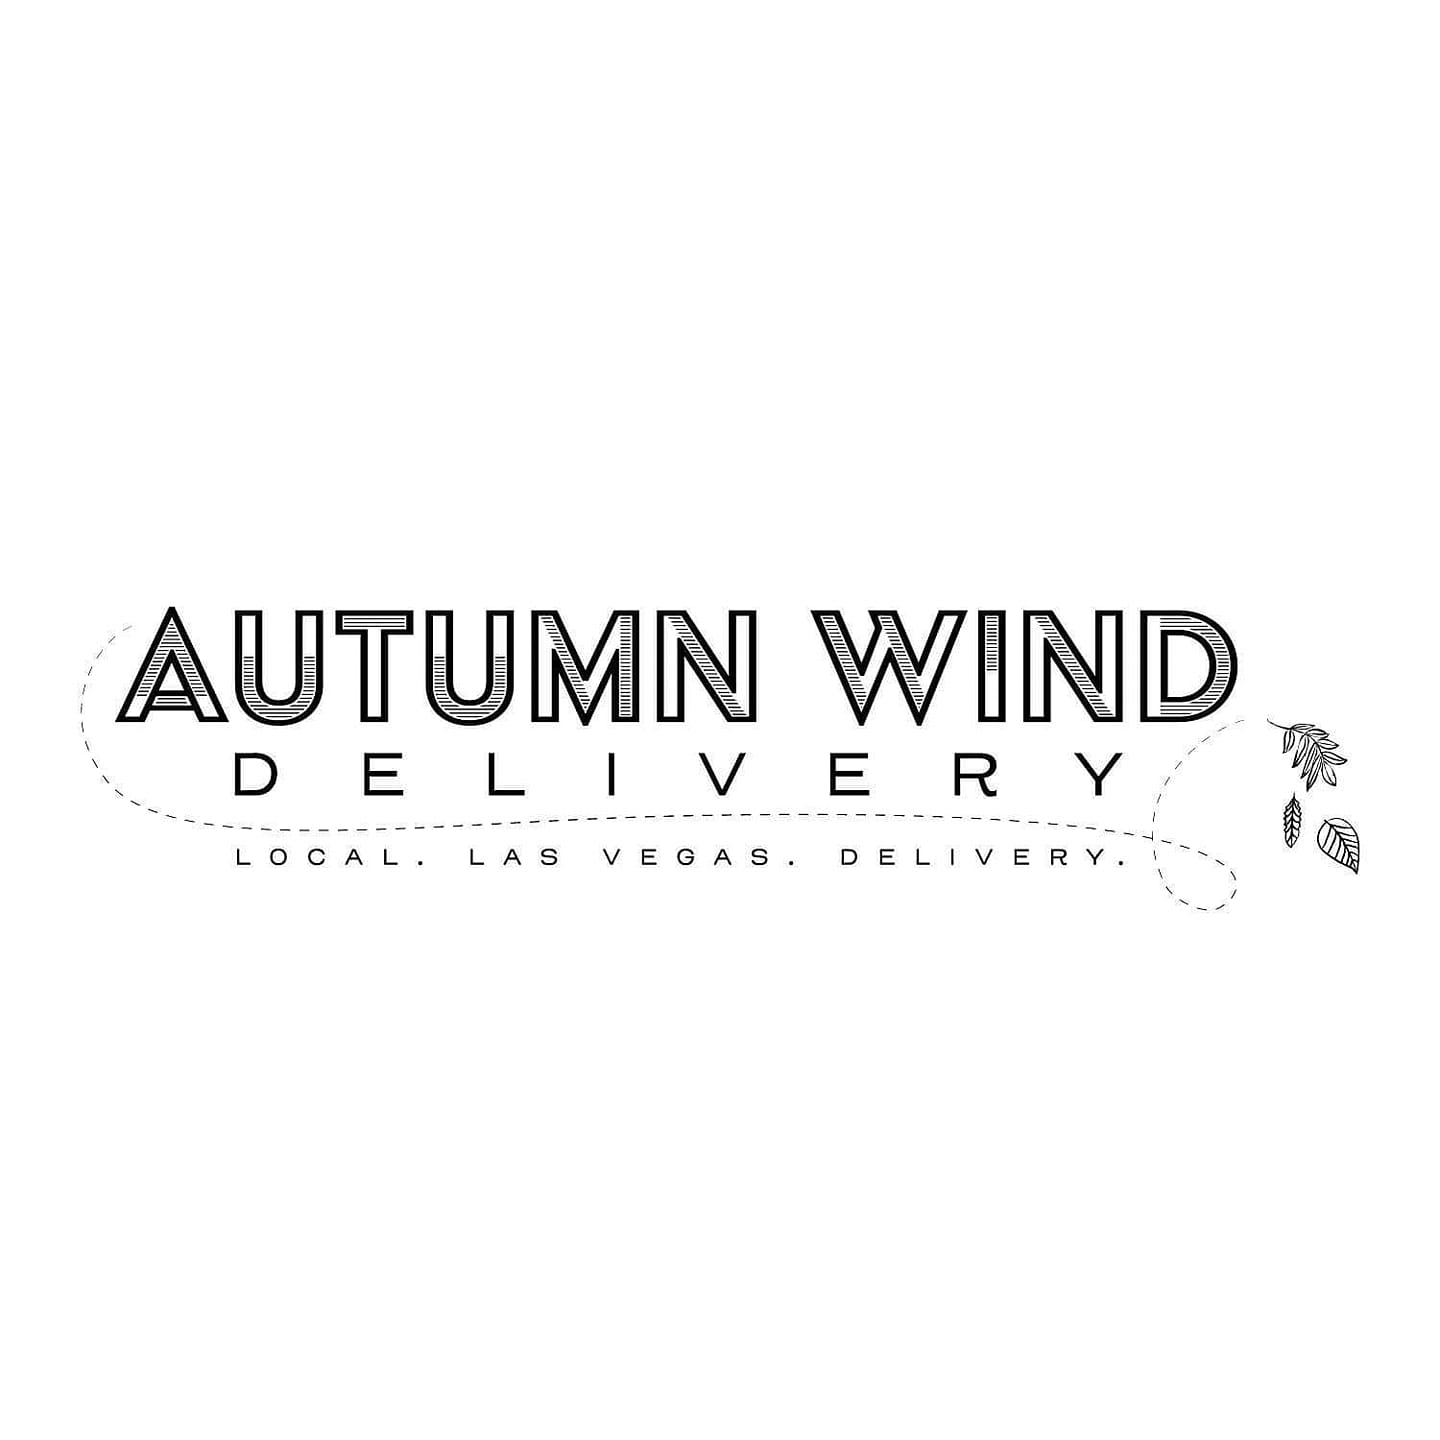 Autumn Wind Delivery